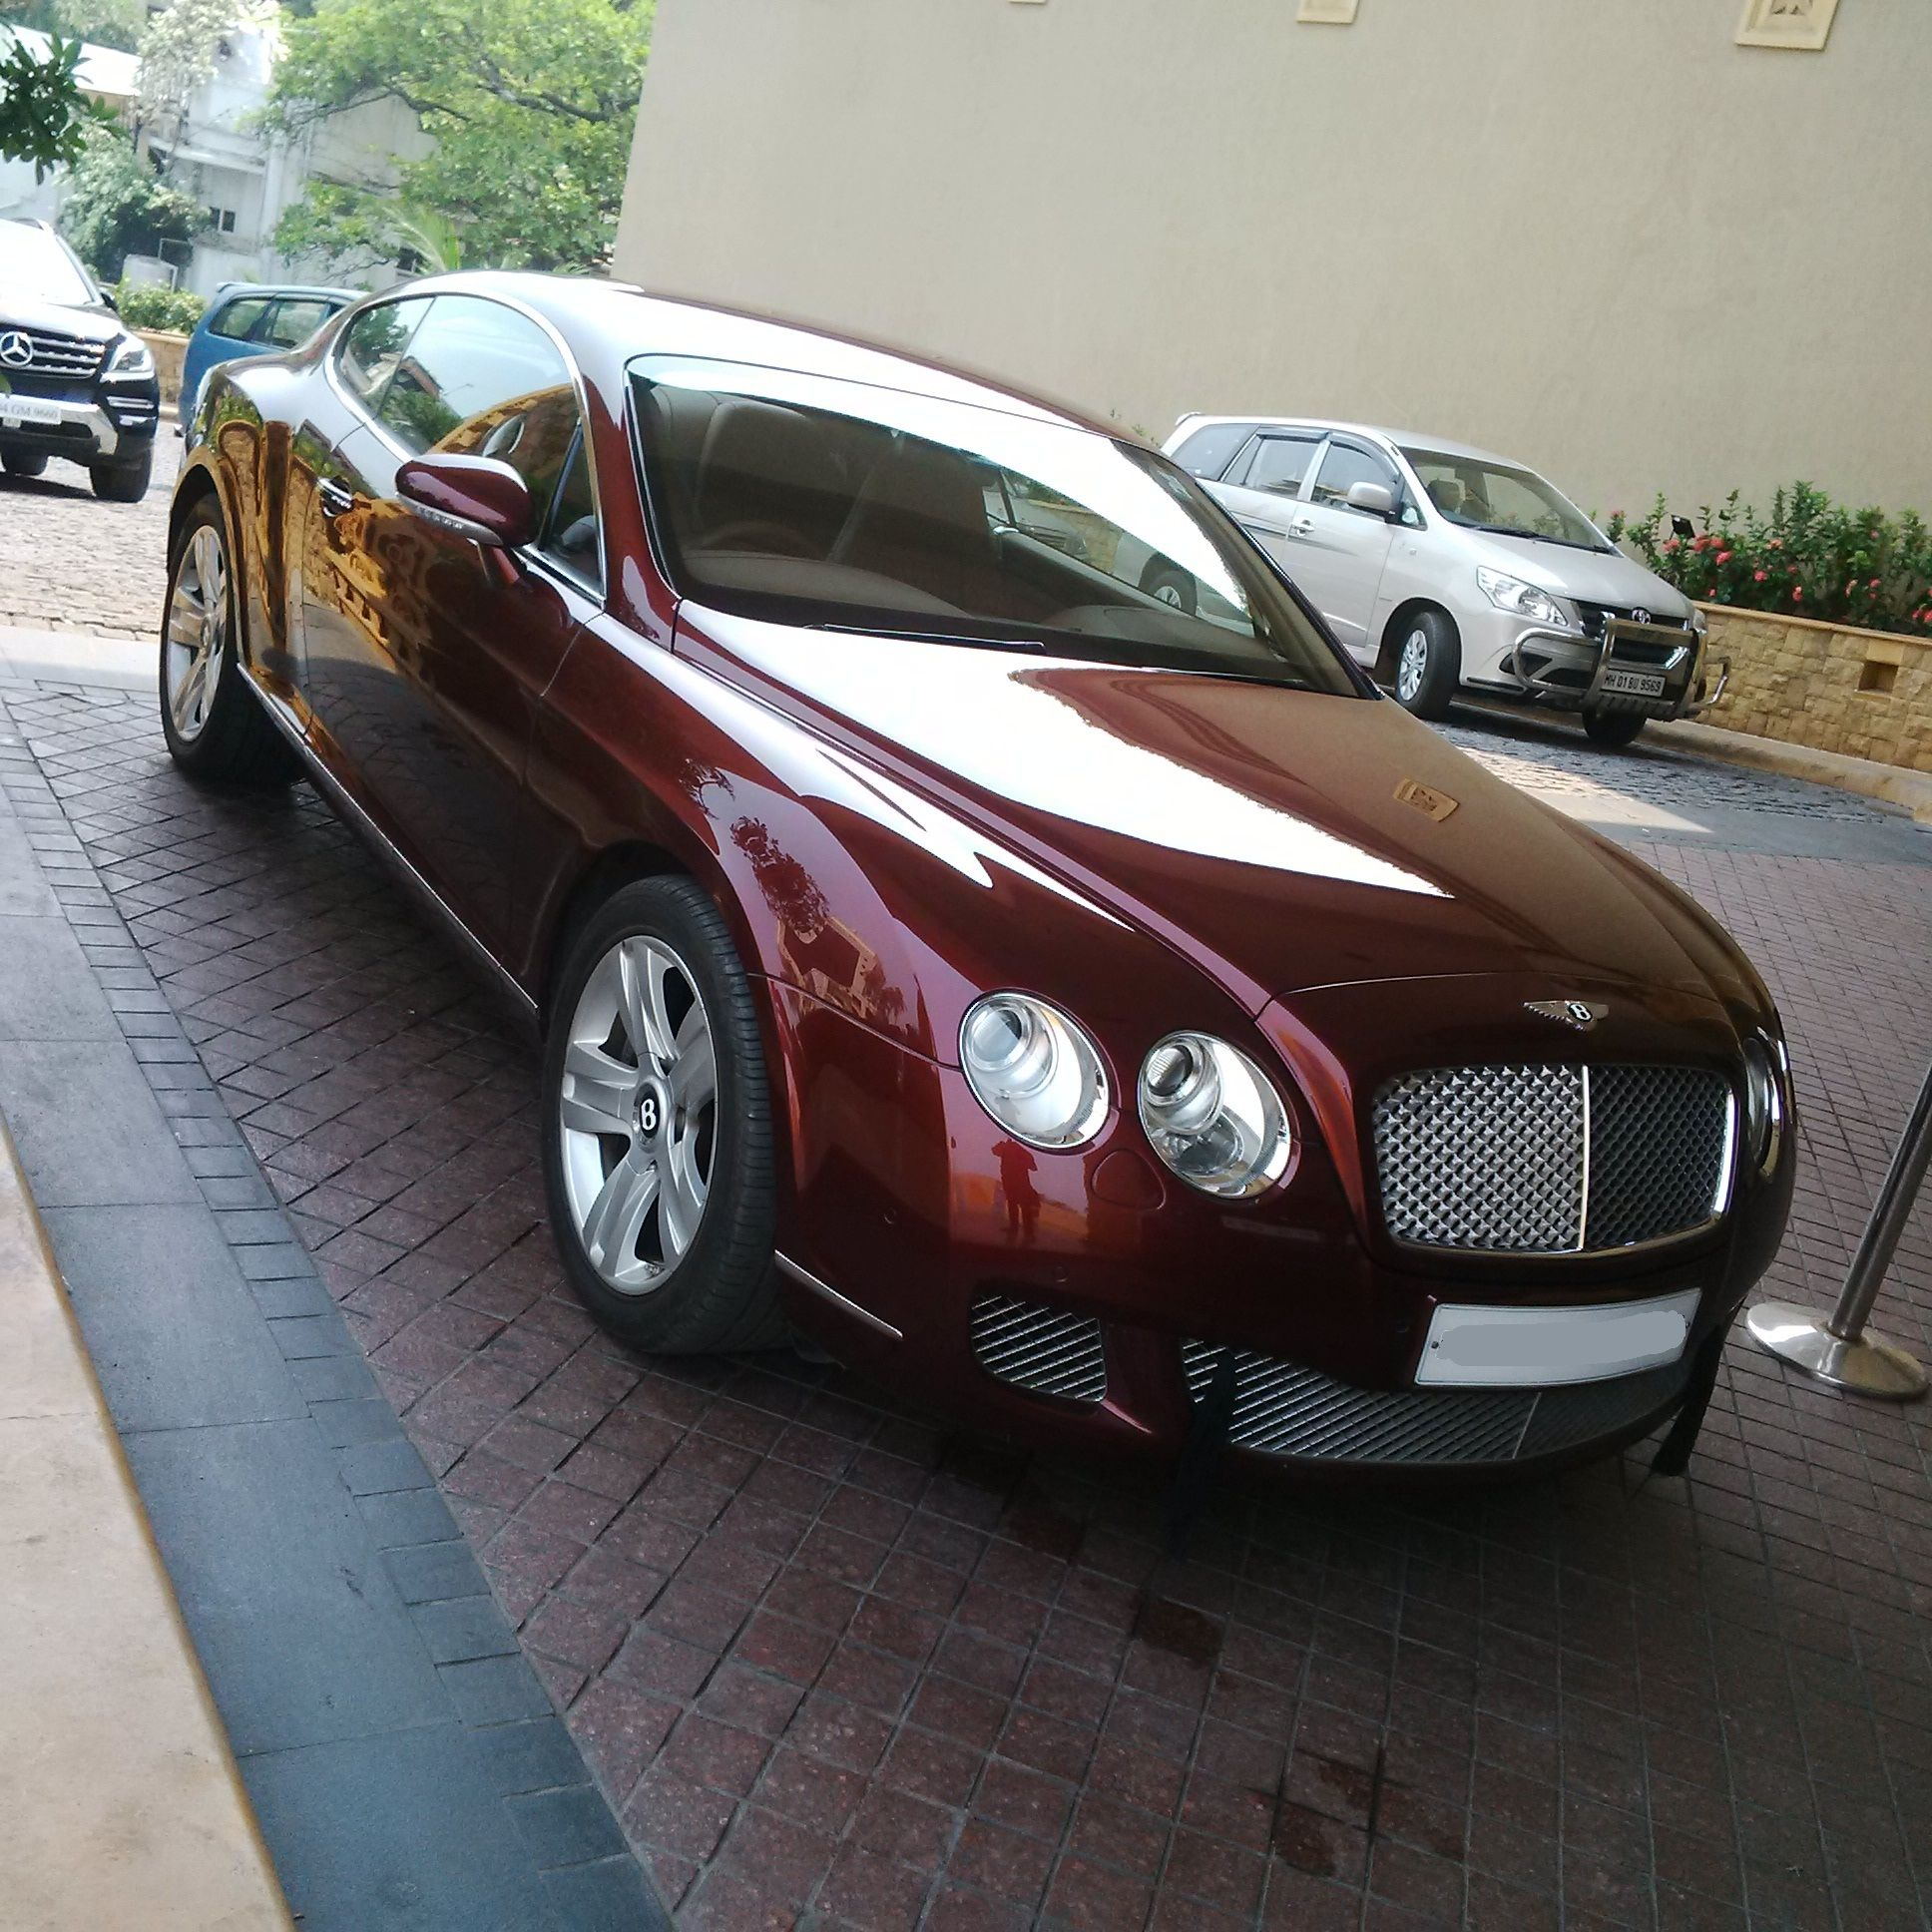 cabriolet directory a malta products hire rentals rent bentley kiribisscom or continental for in from